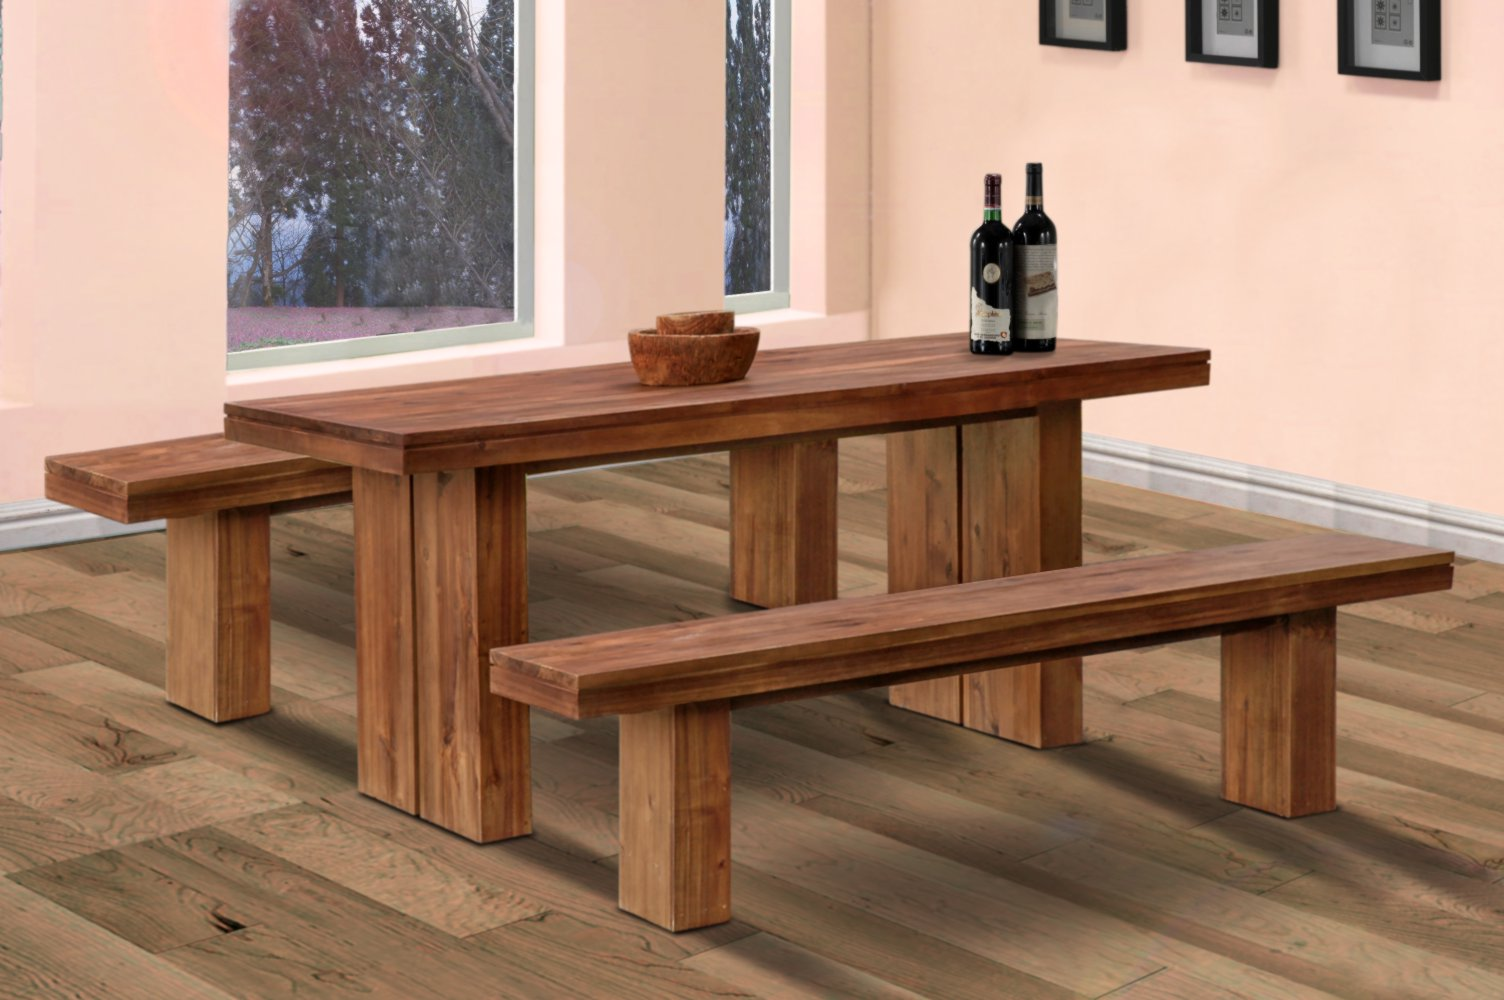 Danielle dining table and bench java valentti for Dining room table with bench